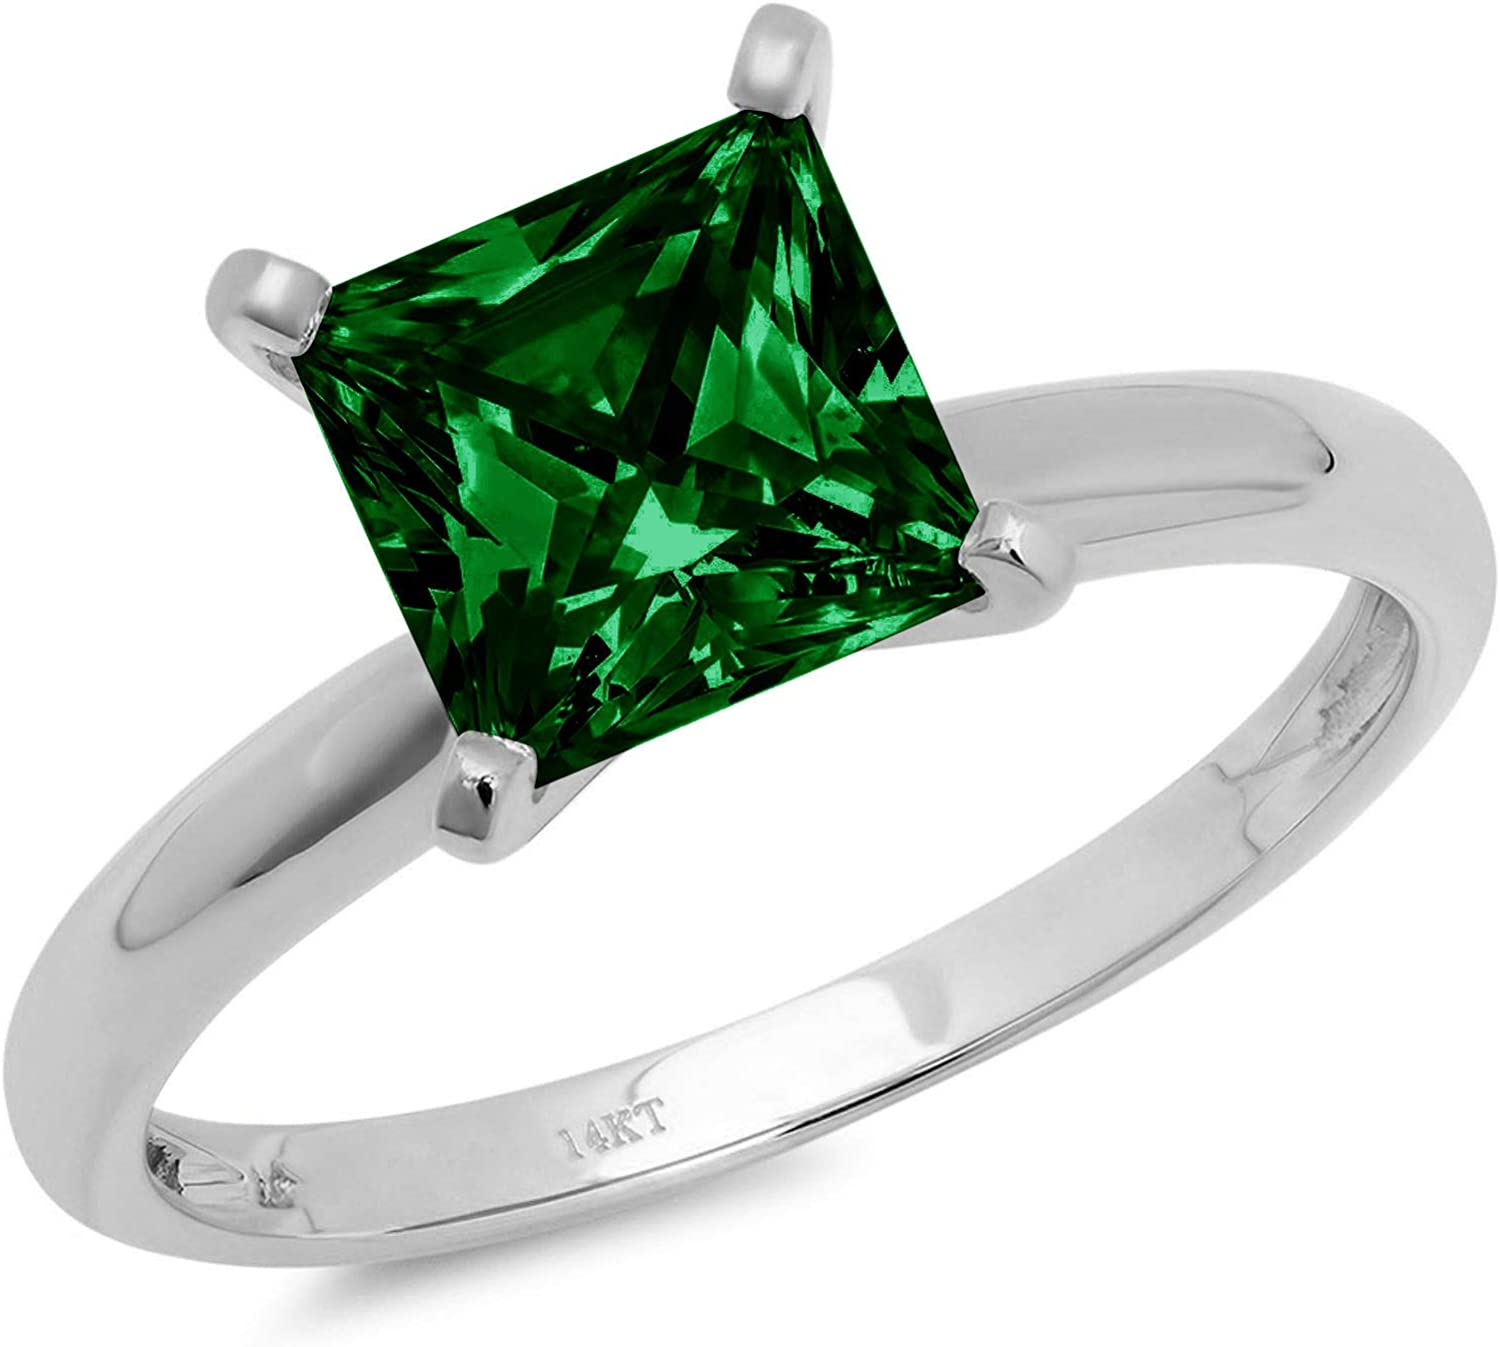 1.4ct Brilliant Princess Cut Solitaire Flawless Simulated Cubic Zirconia Green Emerald Ideal VVS1 4-Prong Engagement Wedding Bridal Promise Anniversary Designer Ring Solid 14k White Gold for Women